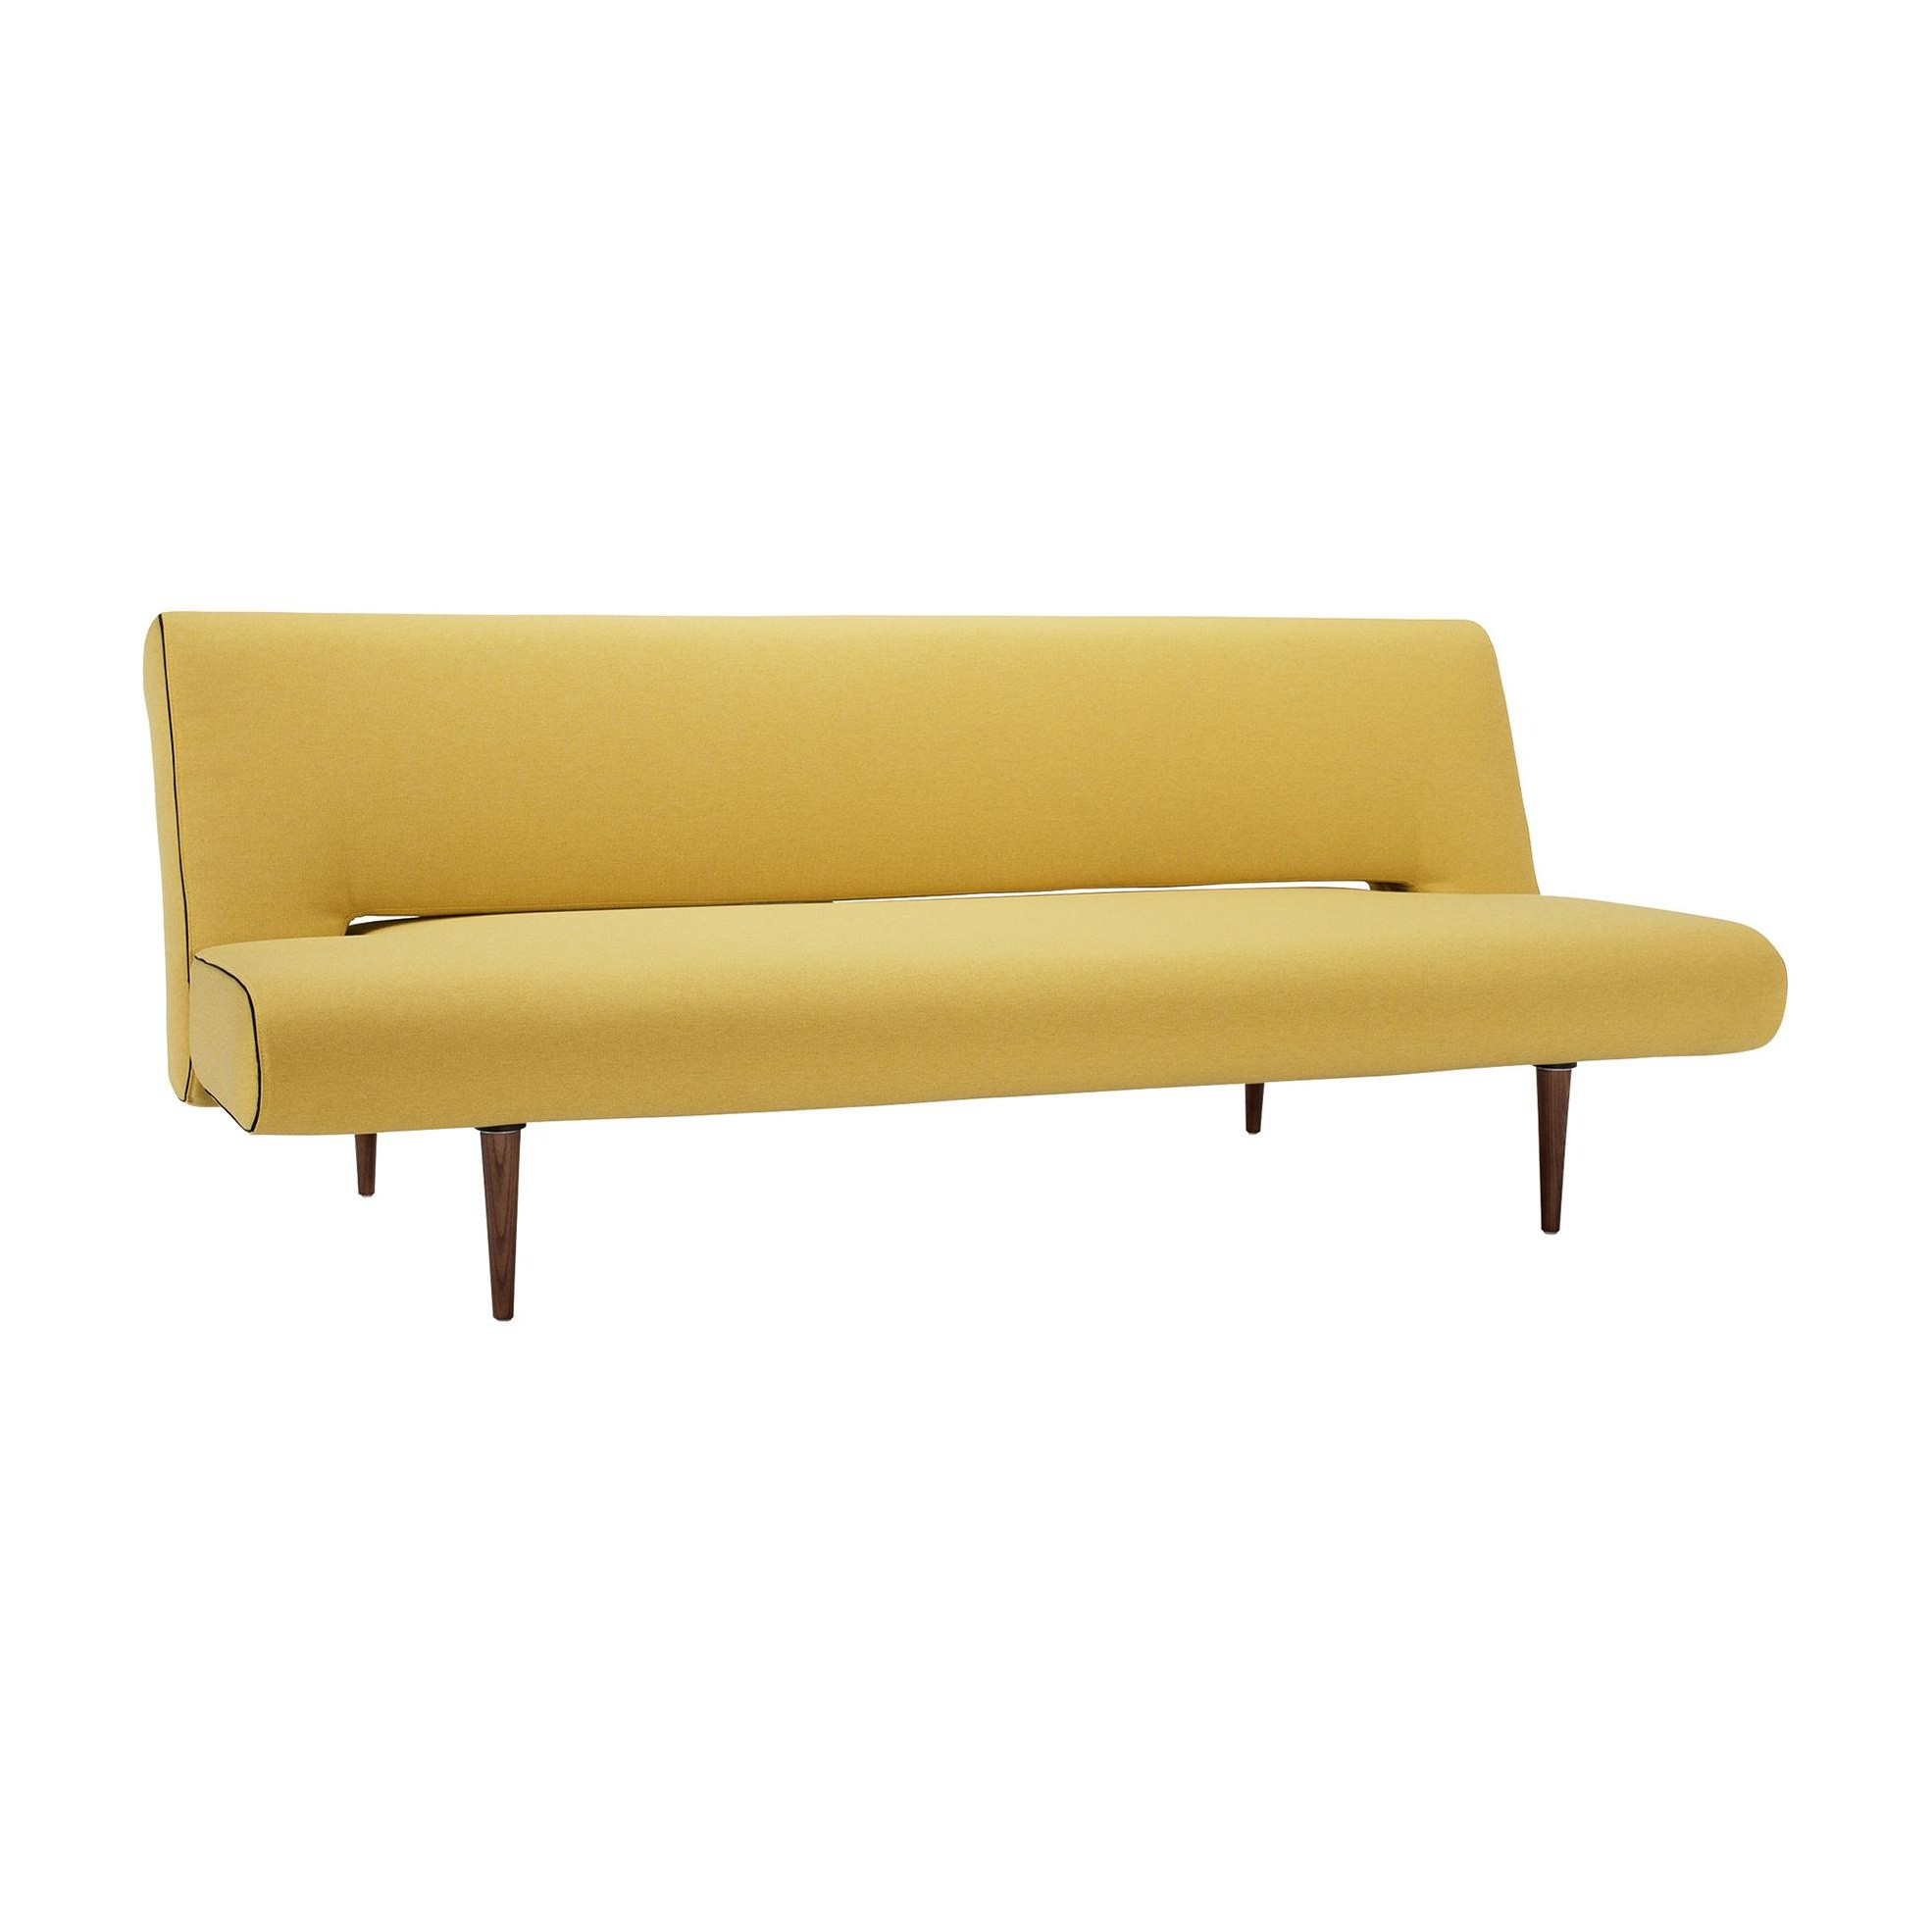 Innovation Unfurl Sofa Bed 200x95cm Ambientedirect